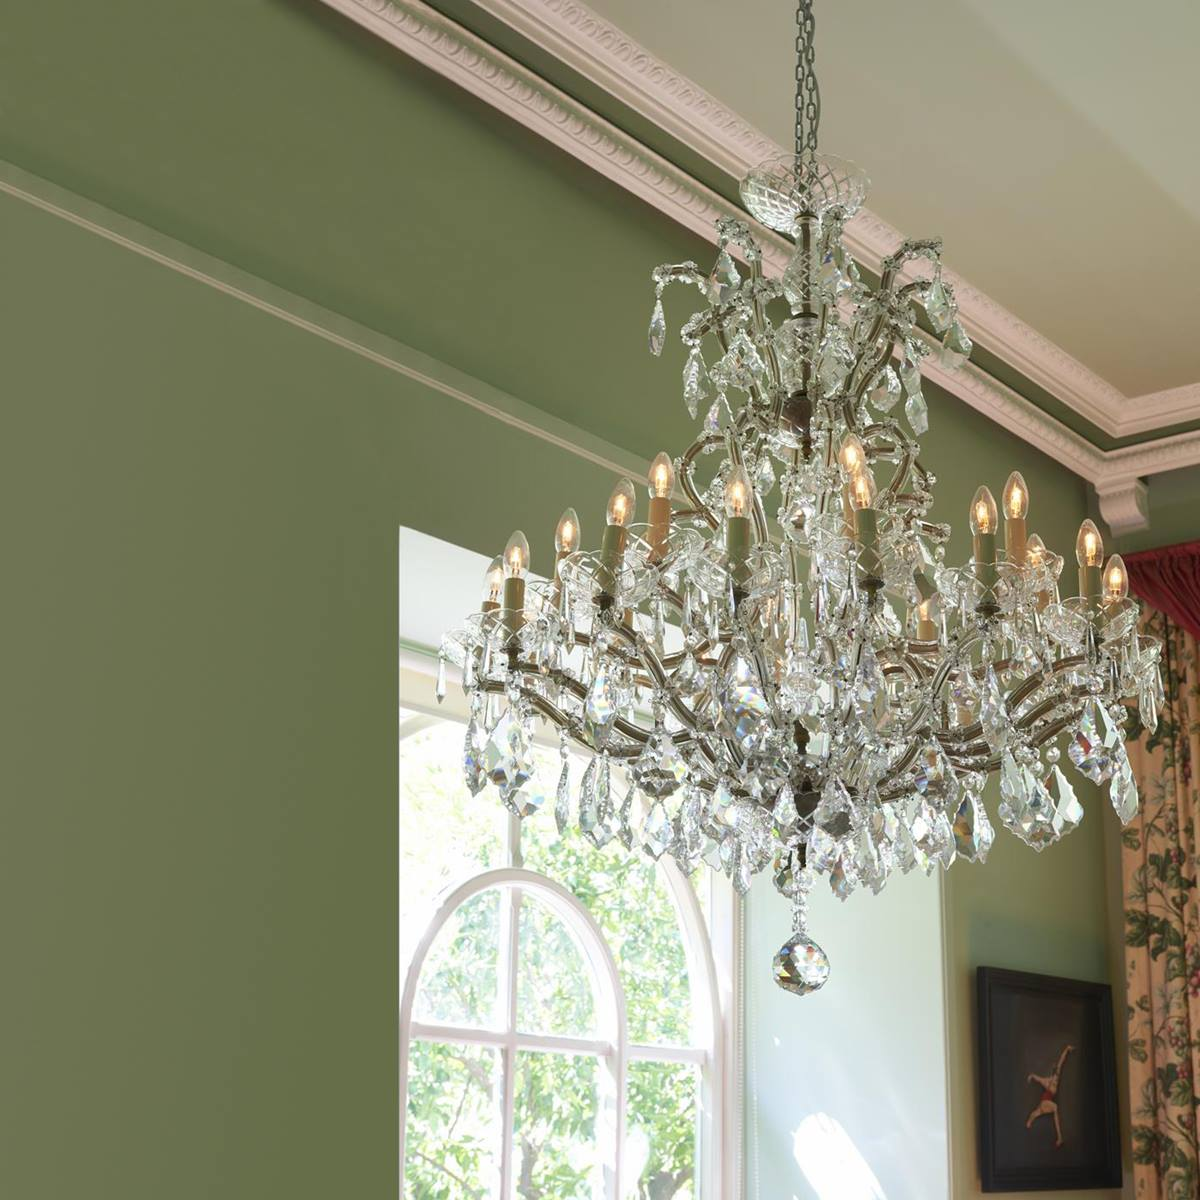 Marie therese chandelier 24 lights caleche interiors marie therese chandelier 24 lights mozeypictures Image collections